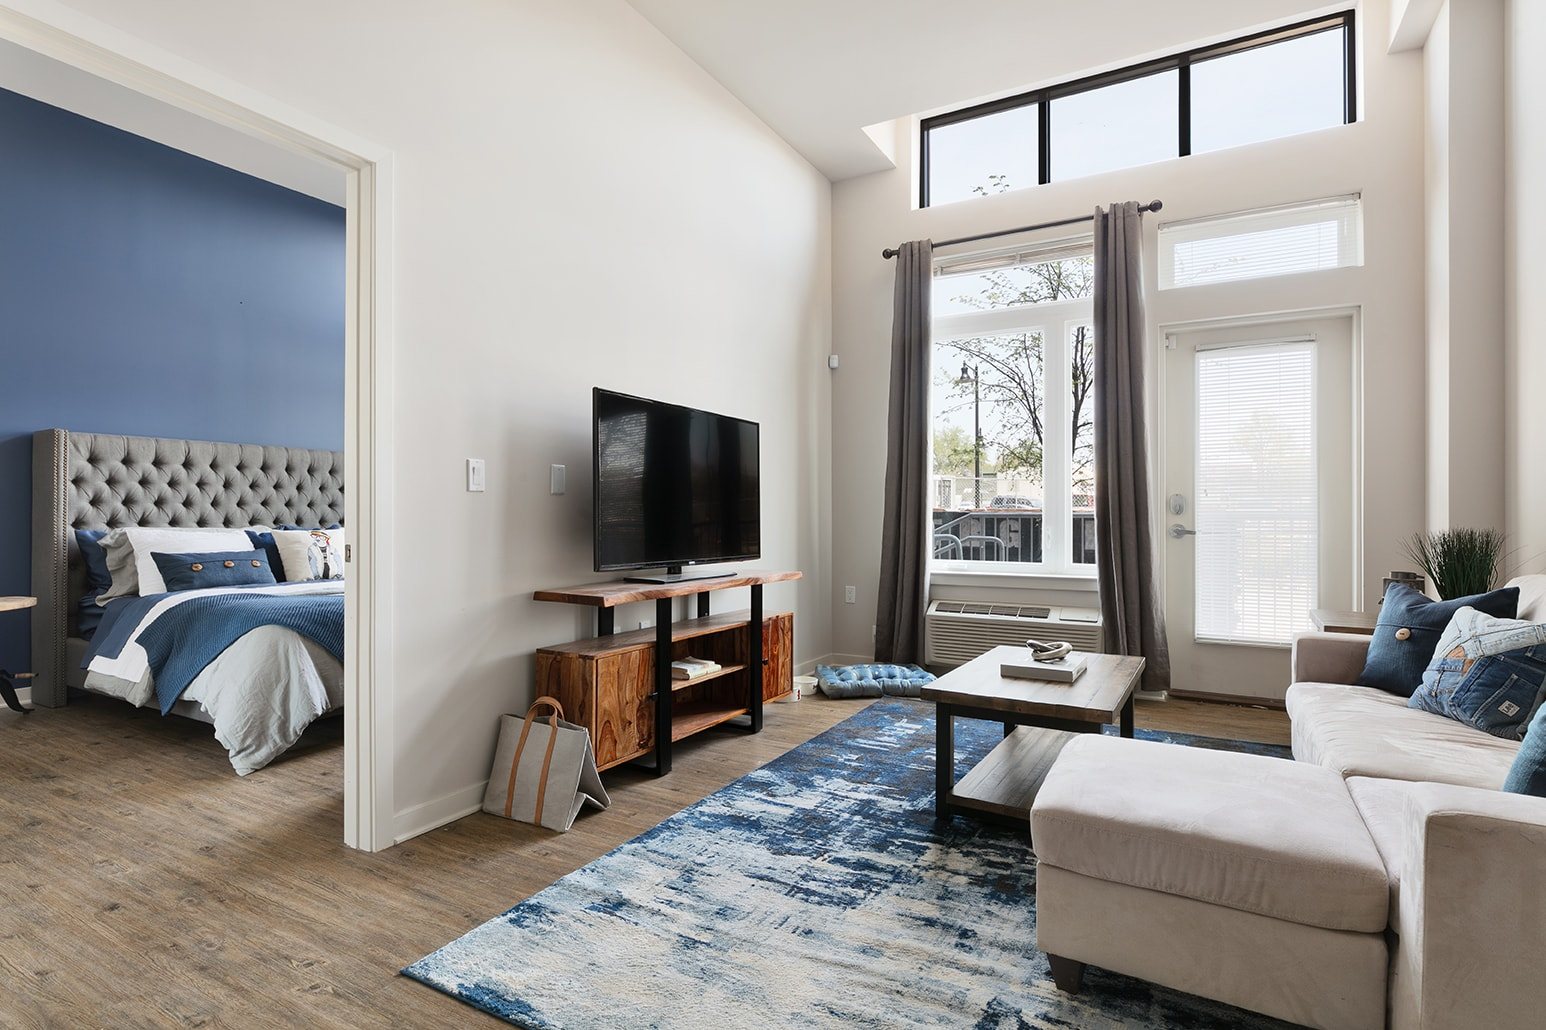 Home rivet - 2 bedroom apartments for rent jersey city ...